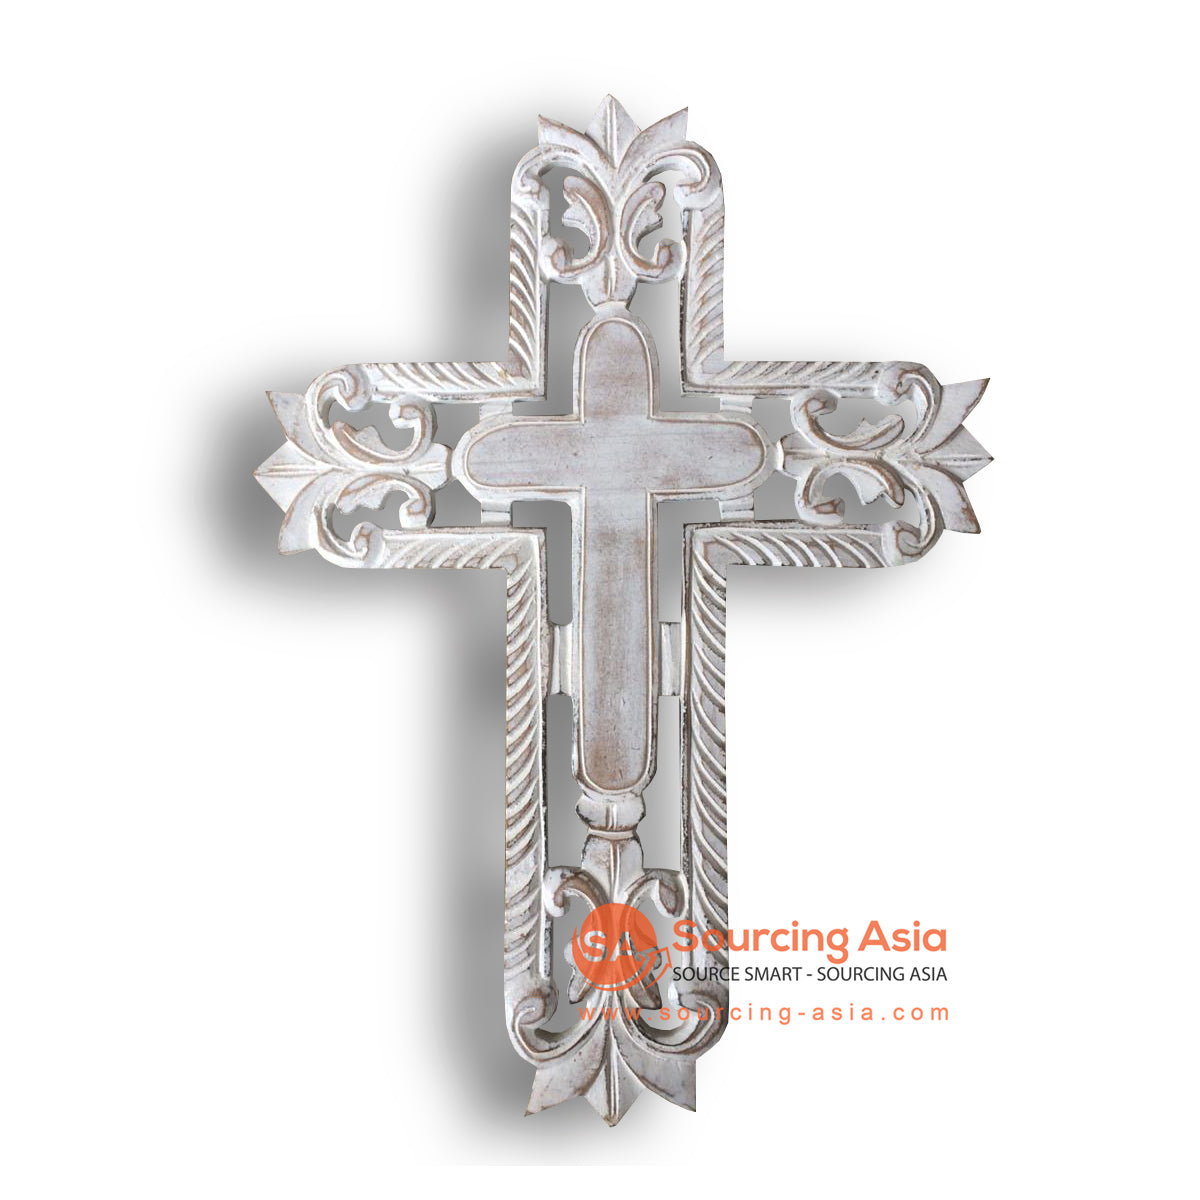 LUH045-2WW WHITE WASHED WOODEN CROSS WITH CARVING